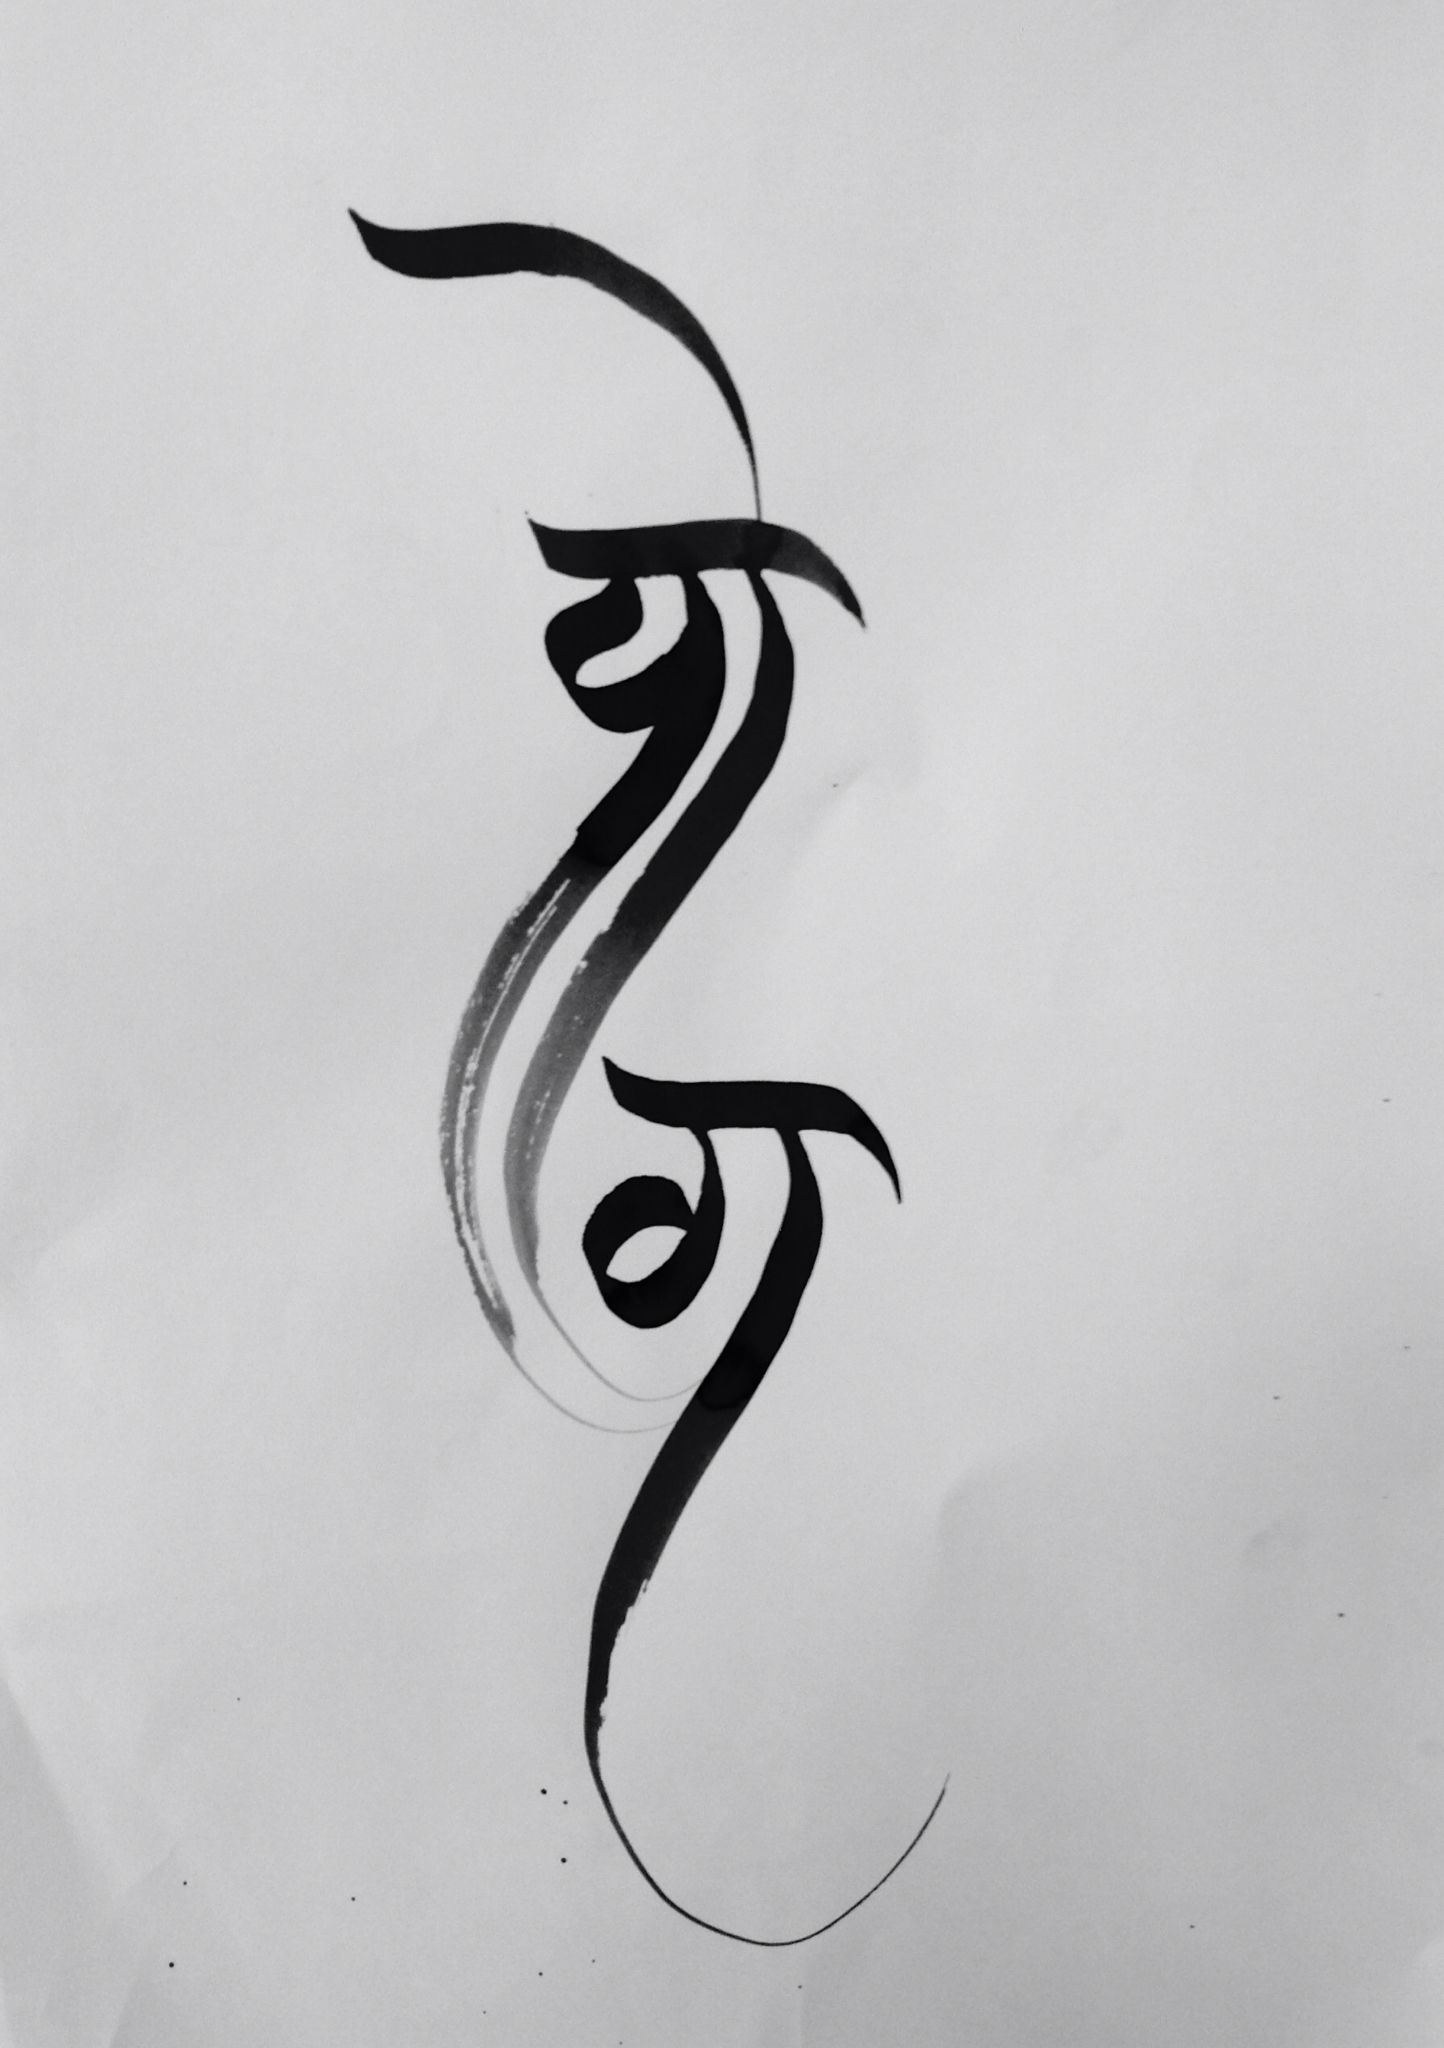 Yoga Devanagari Calligraphy Bamboo Pen And Ink On Paper